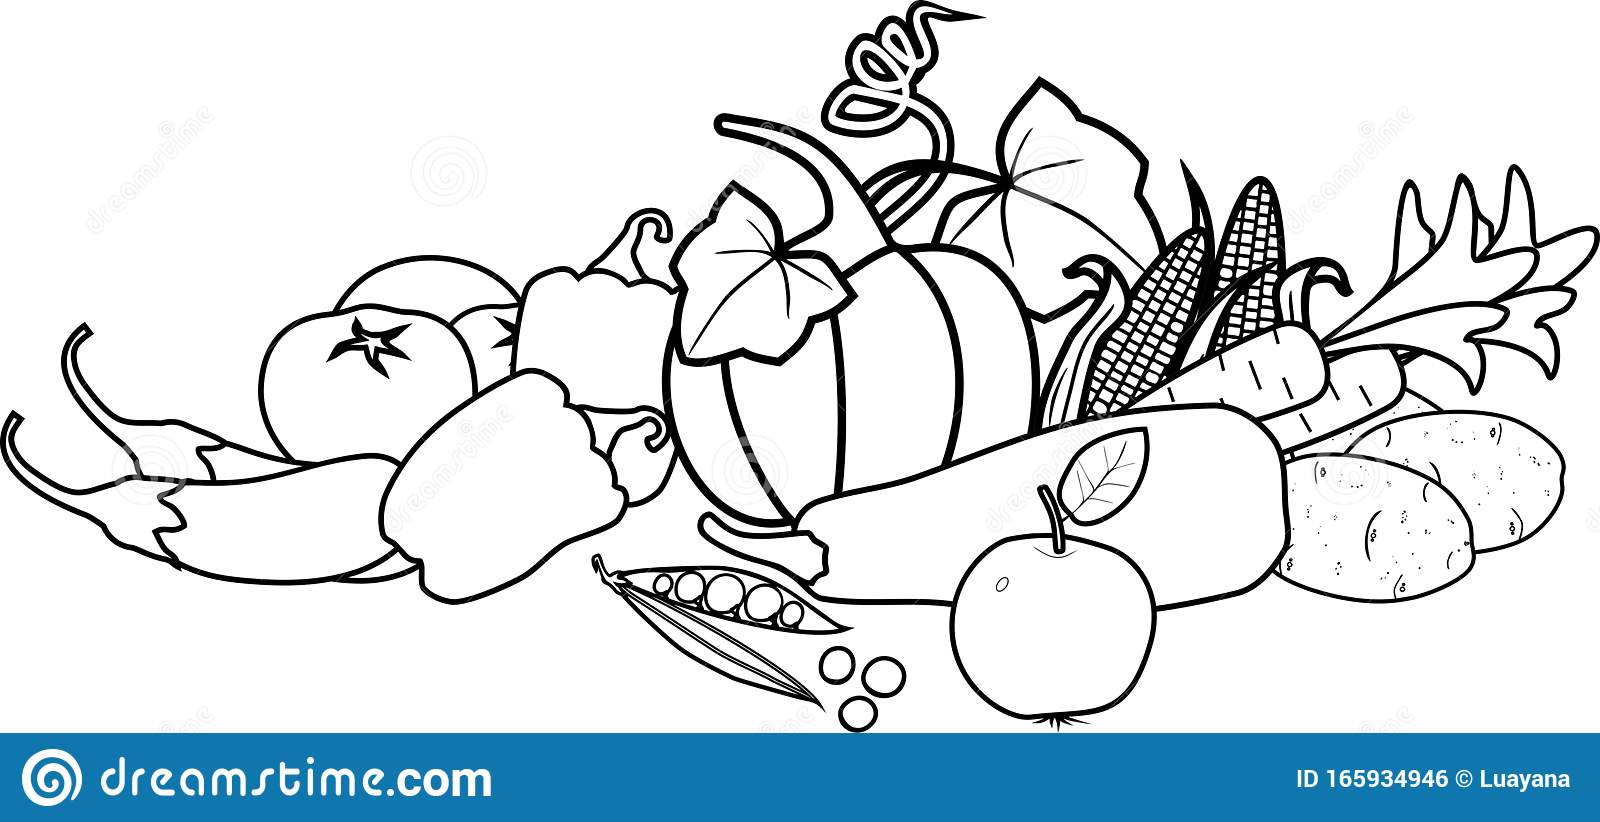 V is for Vegetables coloring page | Free Printable Coloring Pages | 822x1600